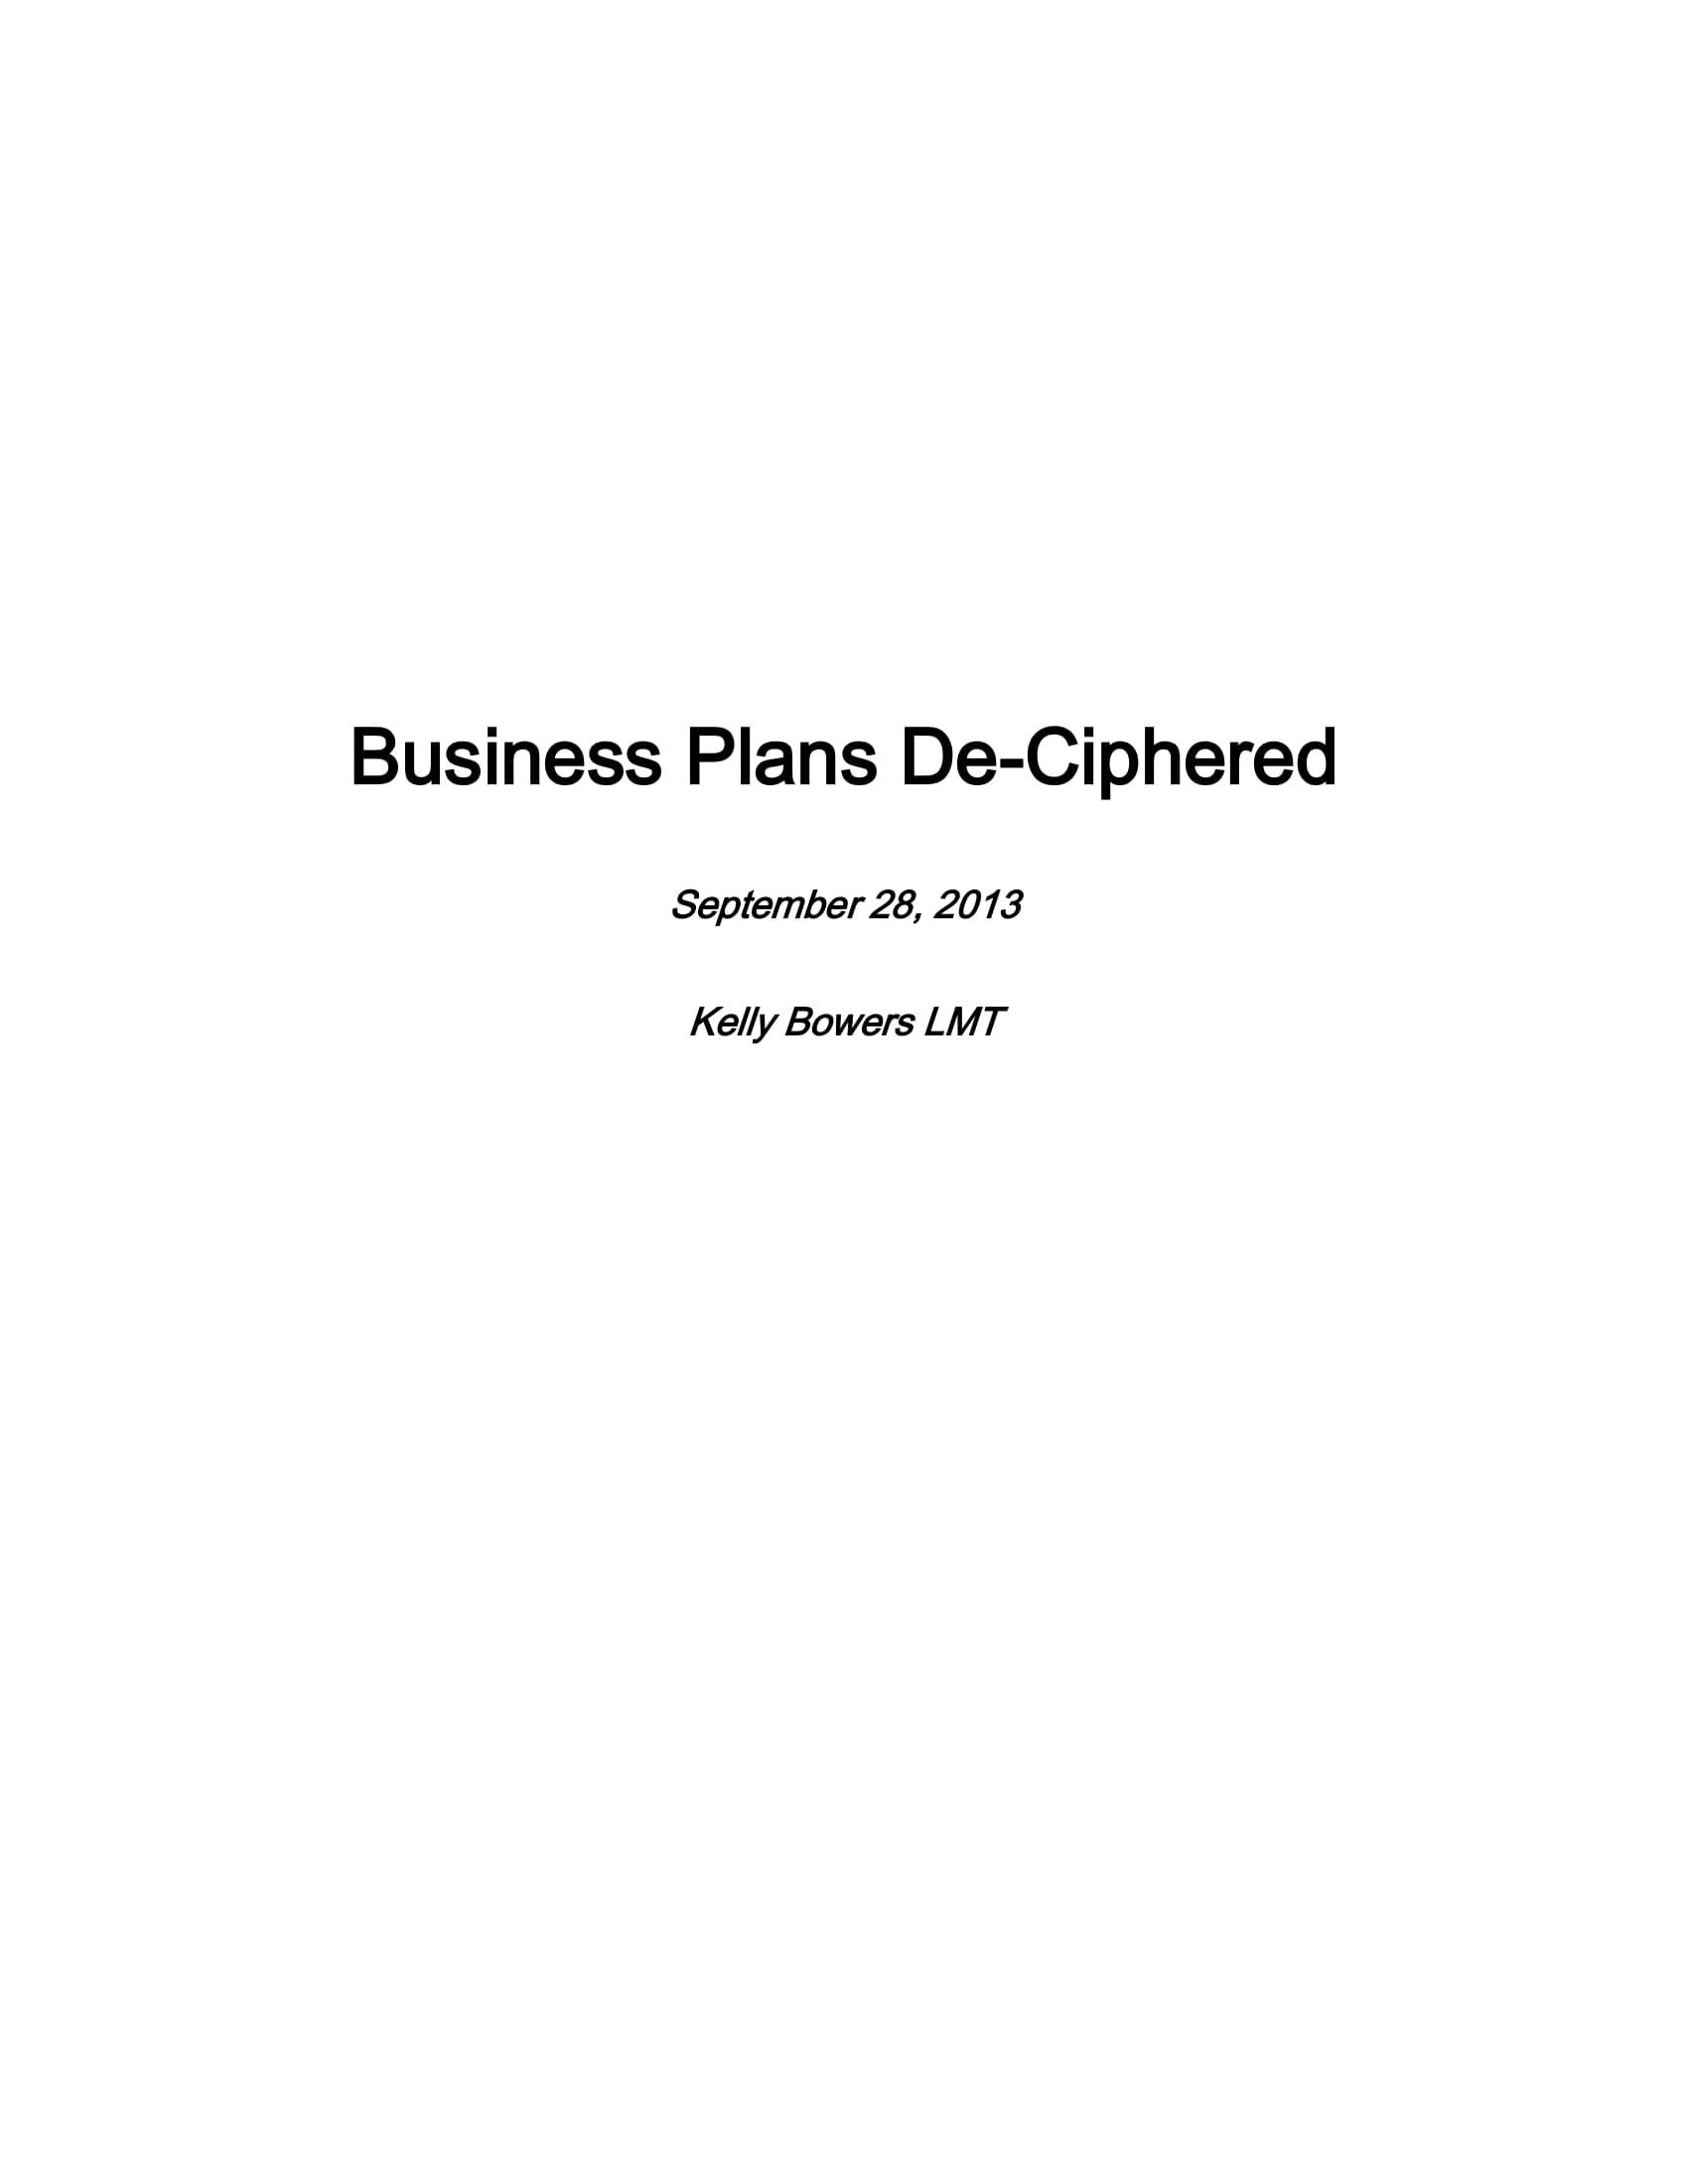 10+ Massage Therapy Business Plan Template Examples - PDF, Google